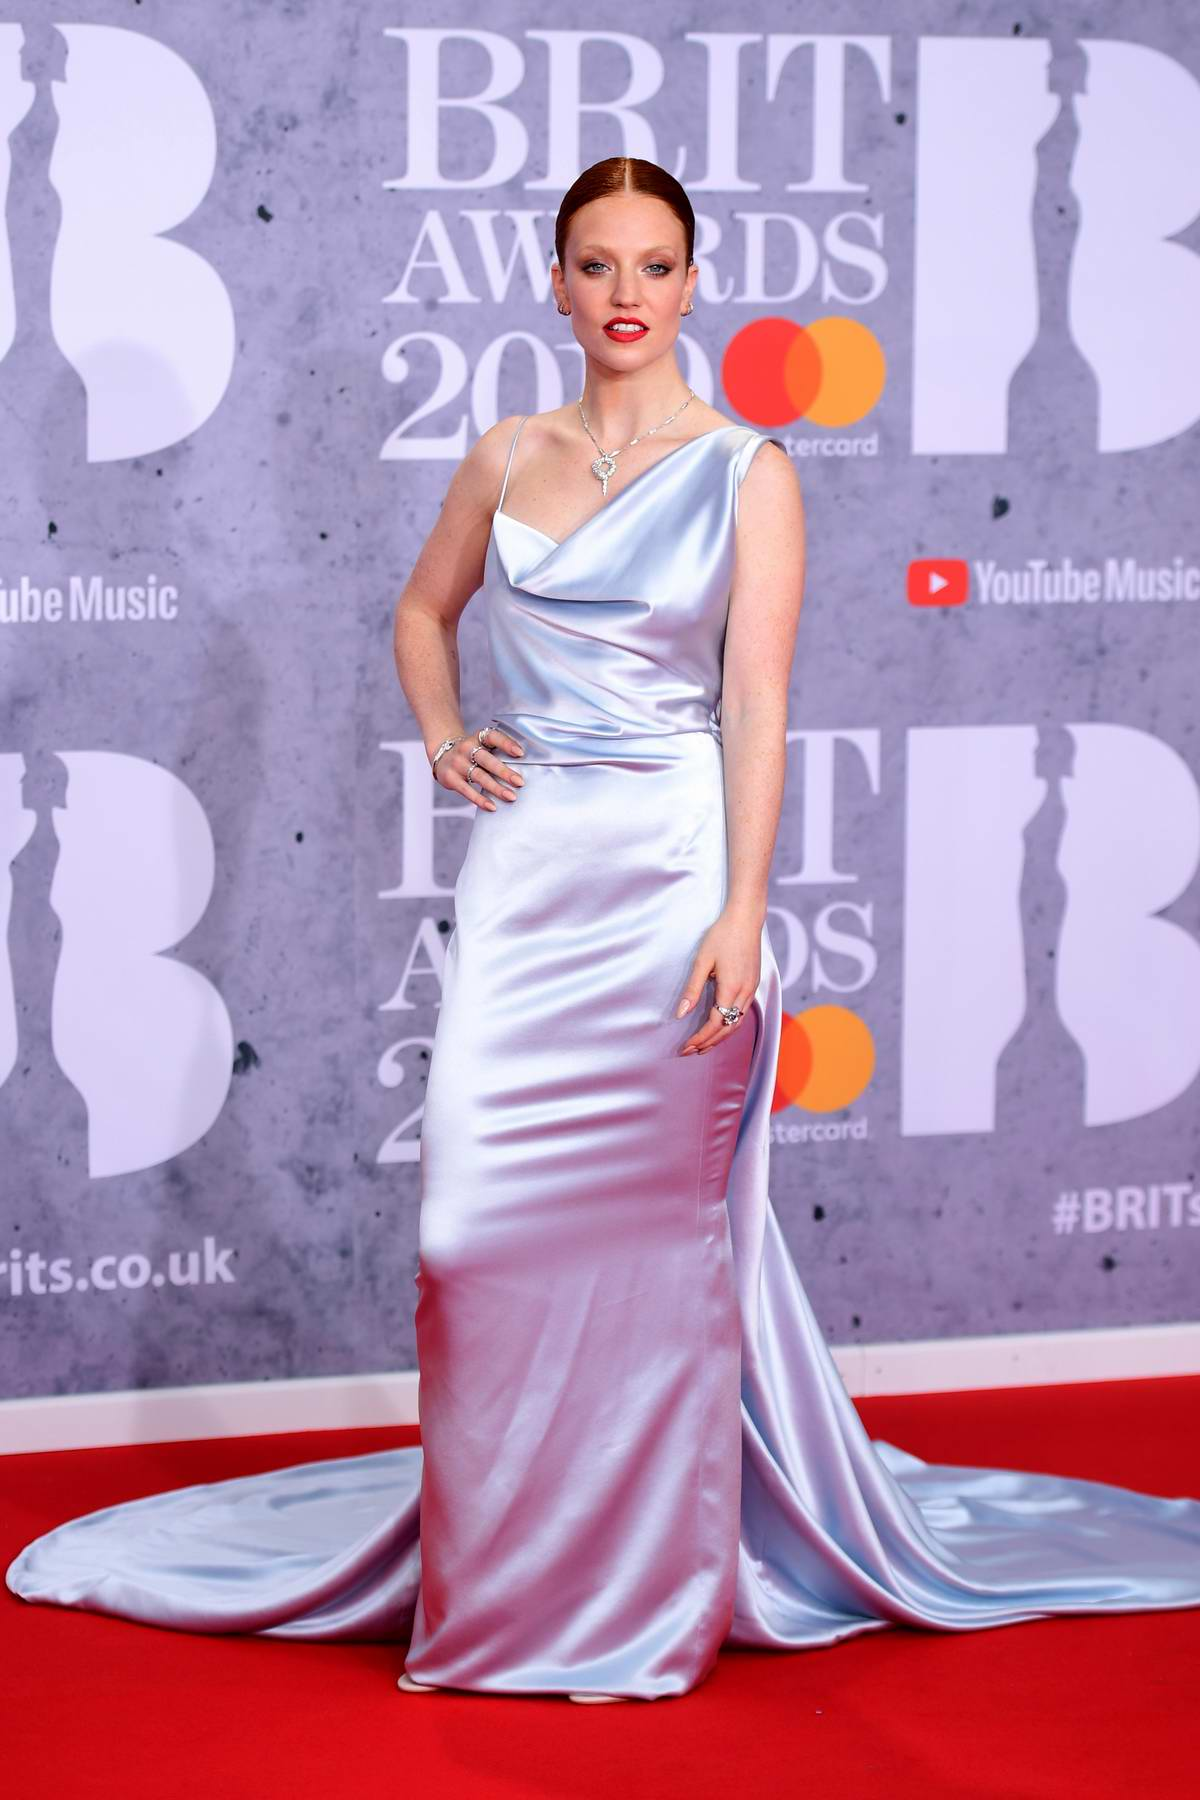 Jess Glynne attends The BRIT Awards 2019 held at The O2 Arena in London, UK